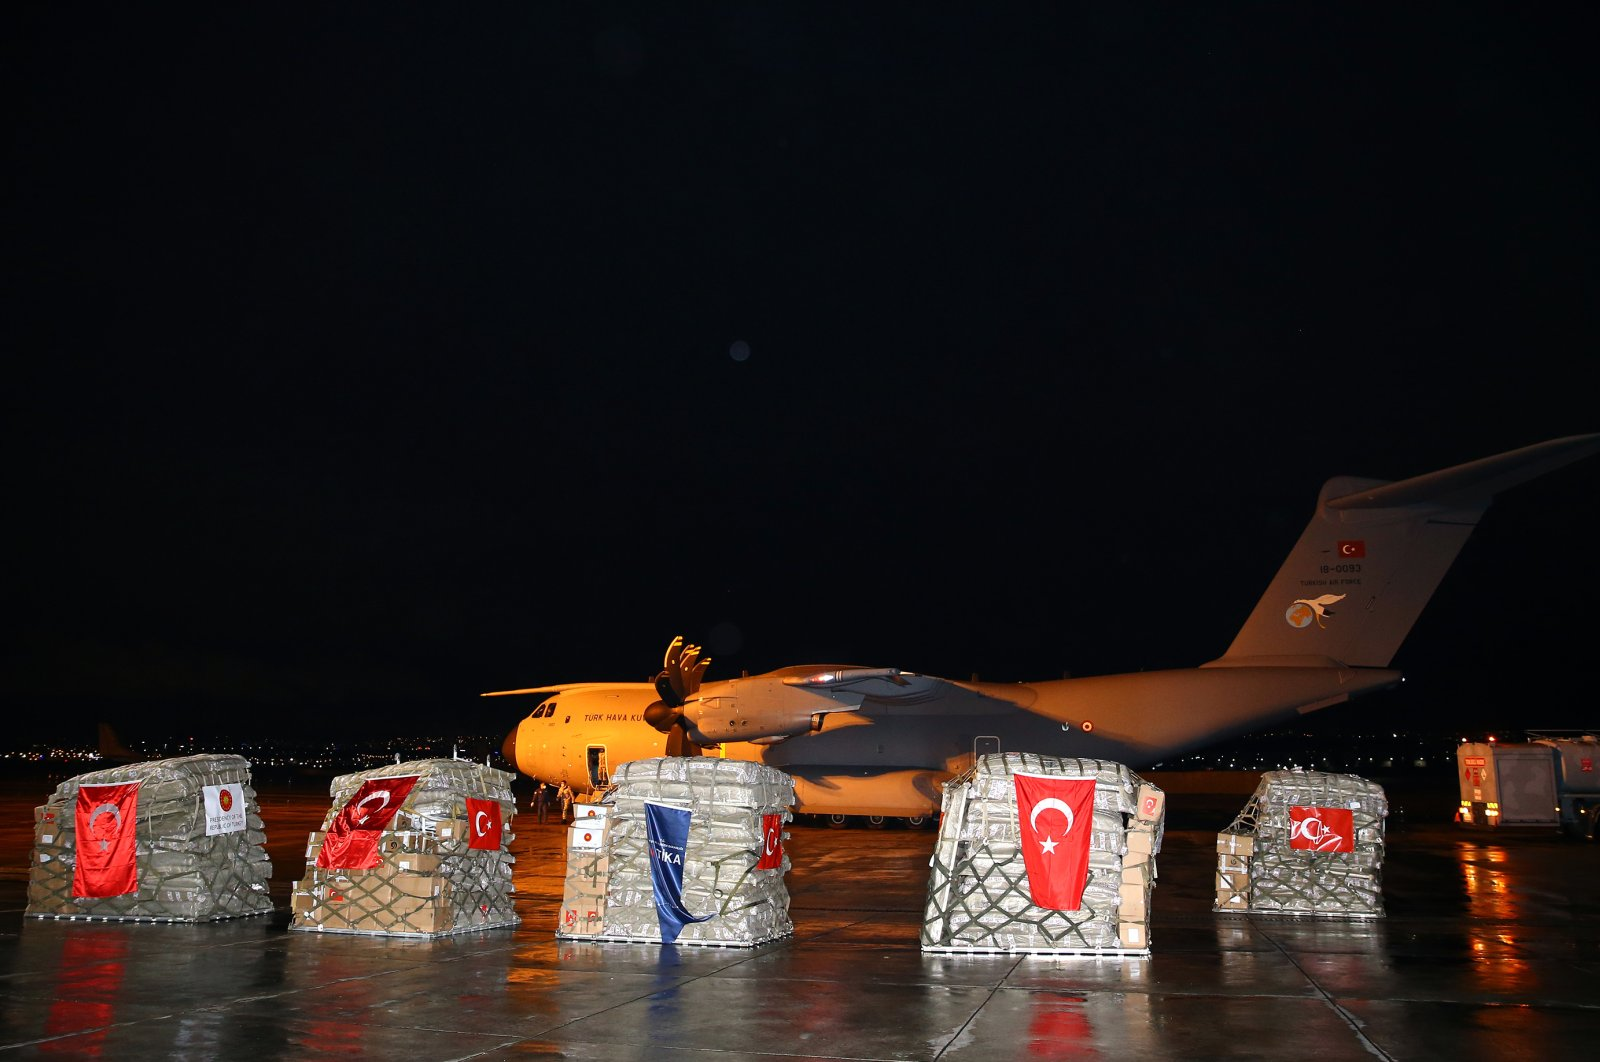 A400M-type military cargo plane carrying medical aid supplies pictured at the Etimesgut Military Airport in Ankara on Monday, May 4, 2020 (AA Photo)